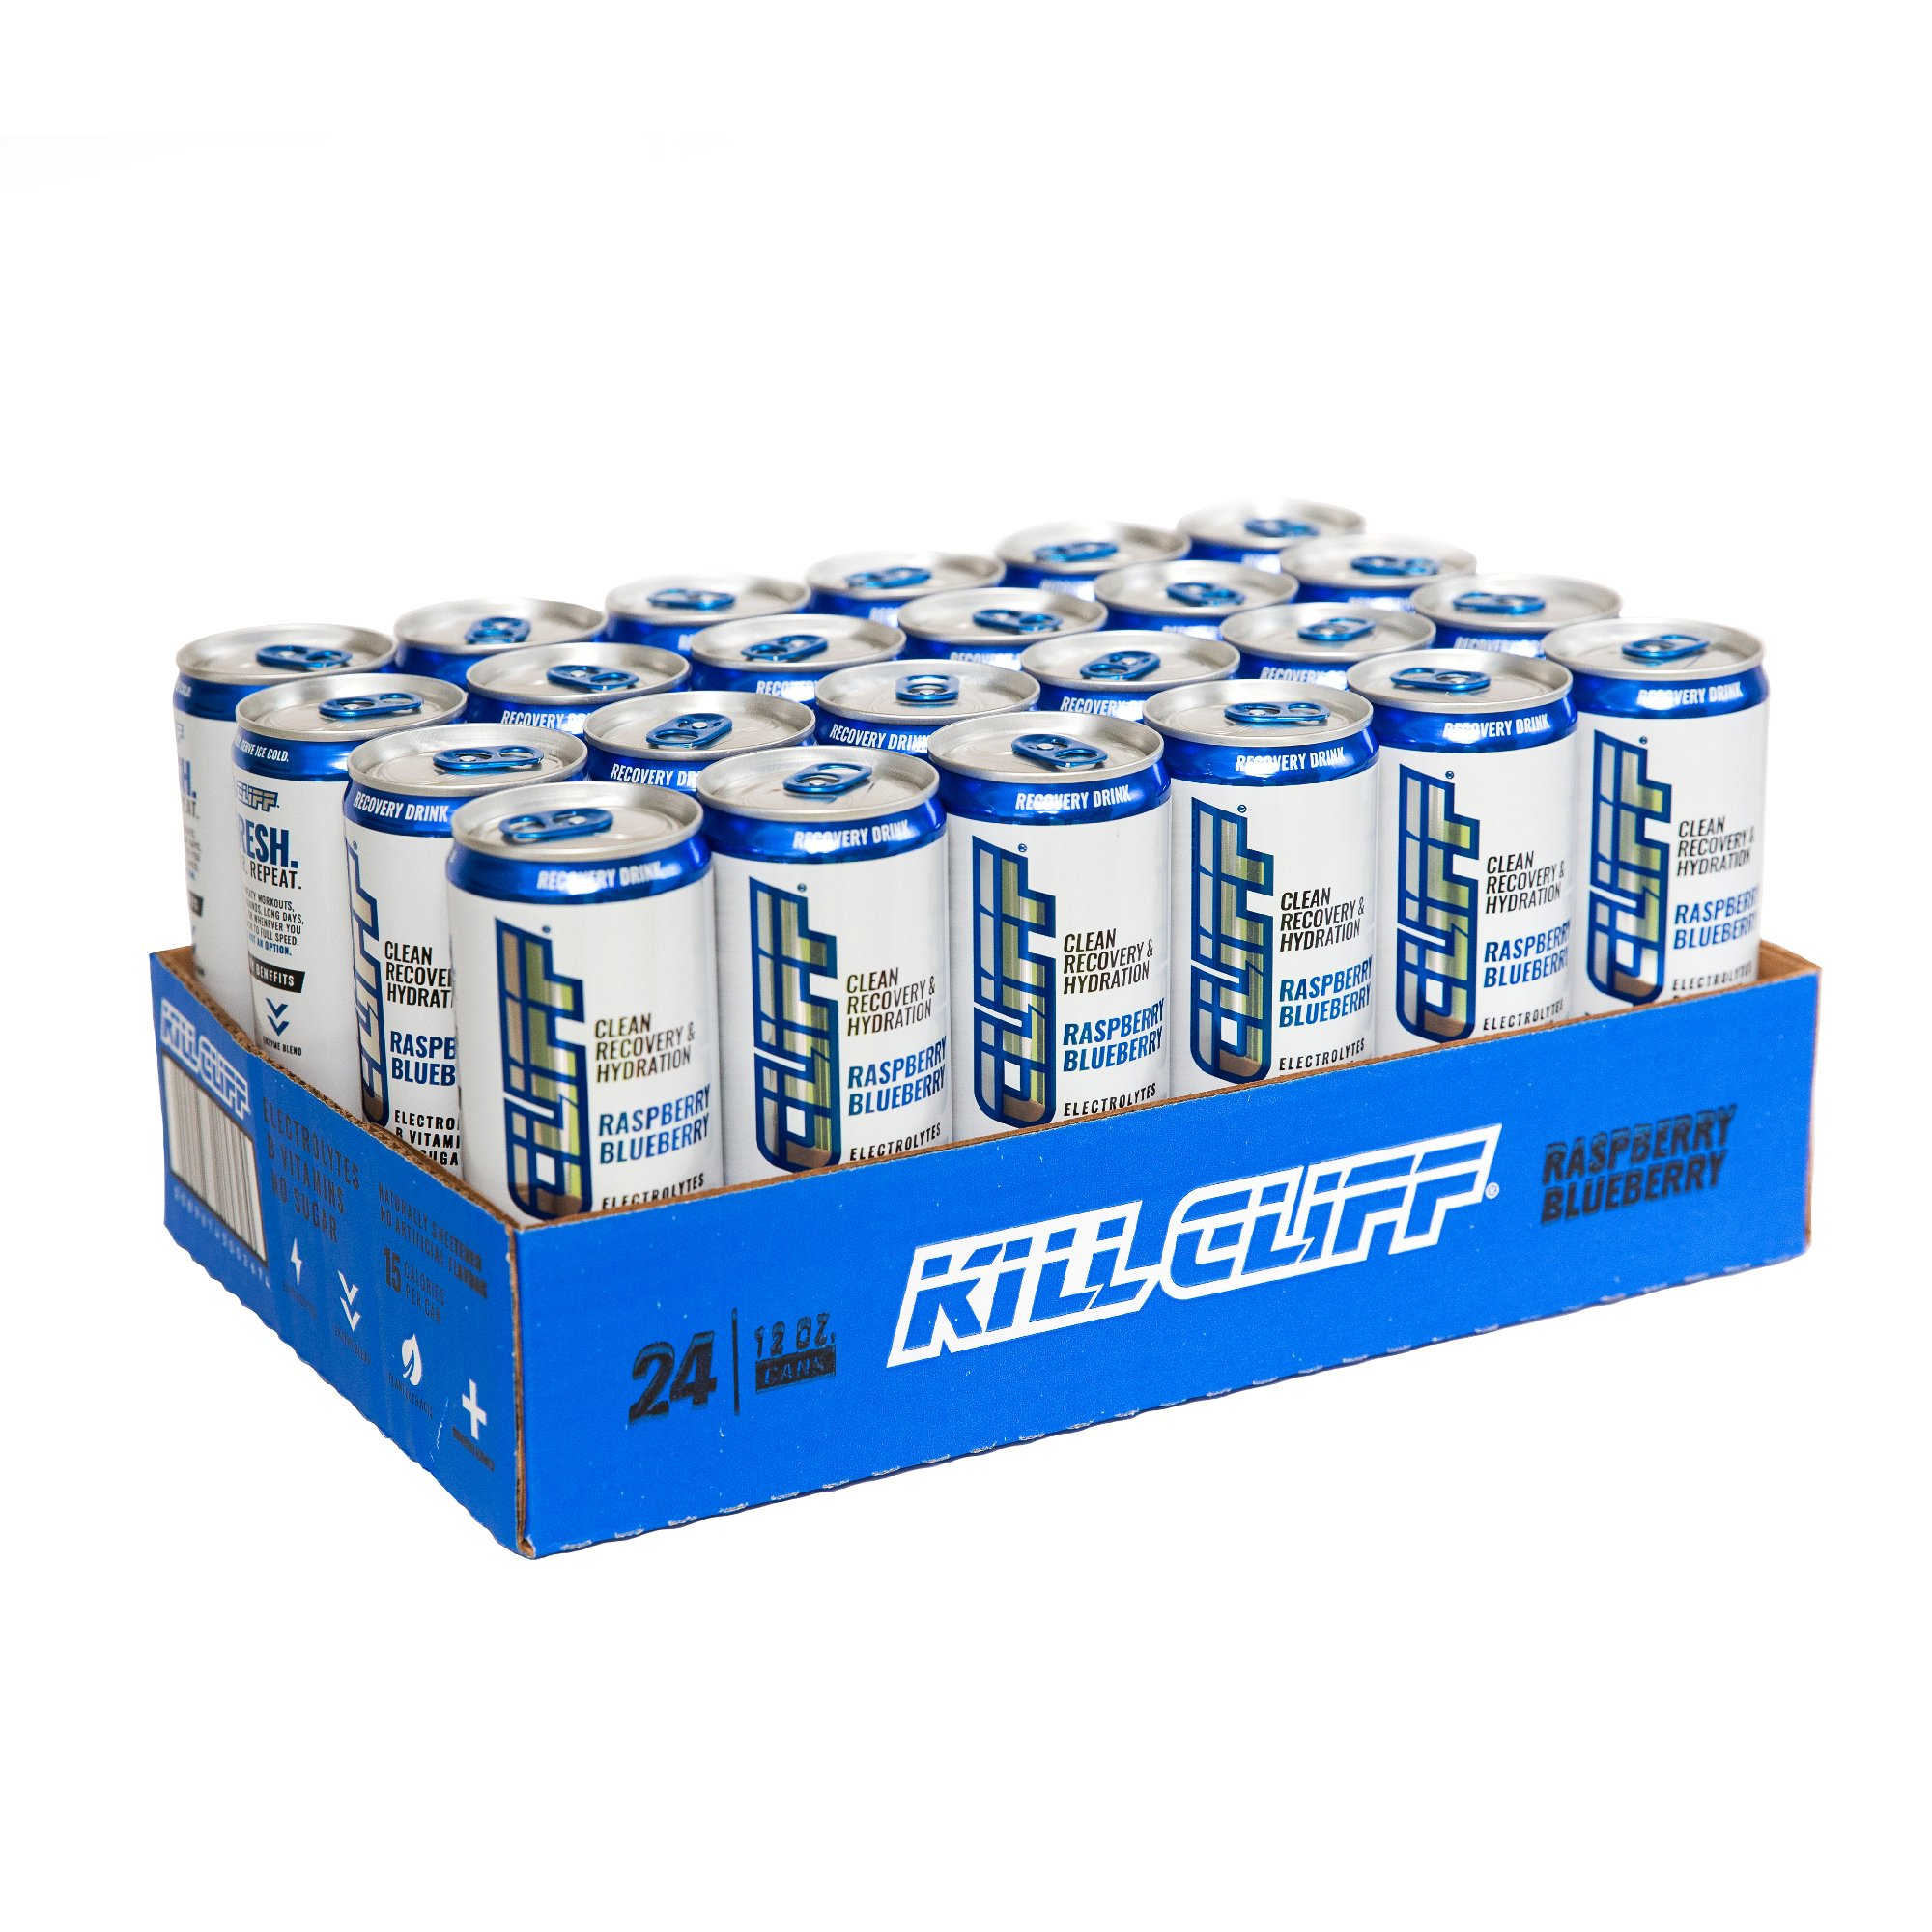 Kill Cliff Electrolyte Recovery Drink, Raspberry Blueberry, 12 Ounce, 24 Count; Low Cal, No Sugar